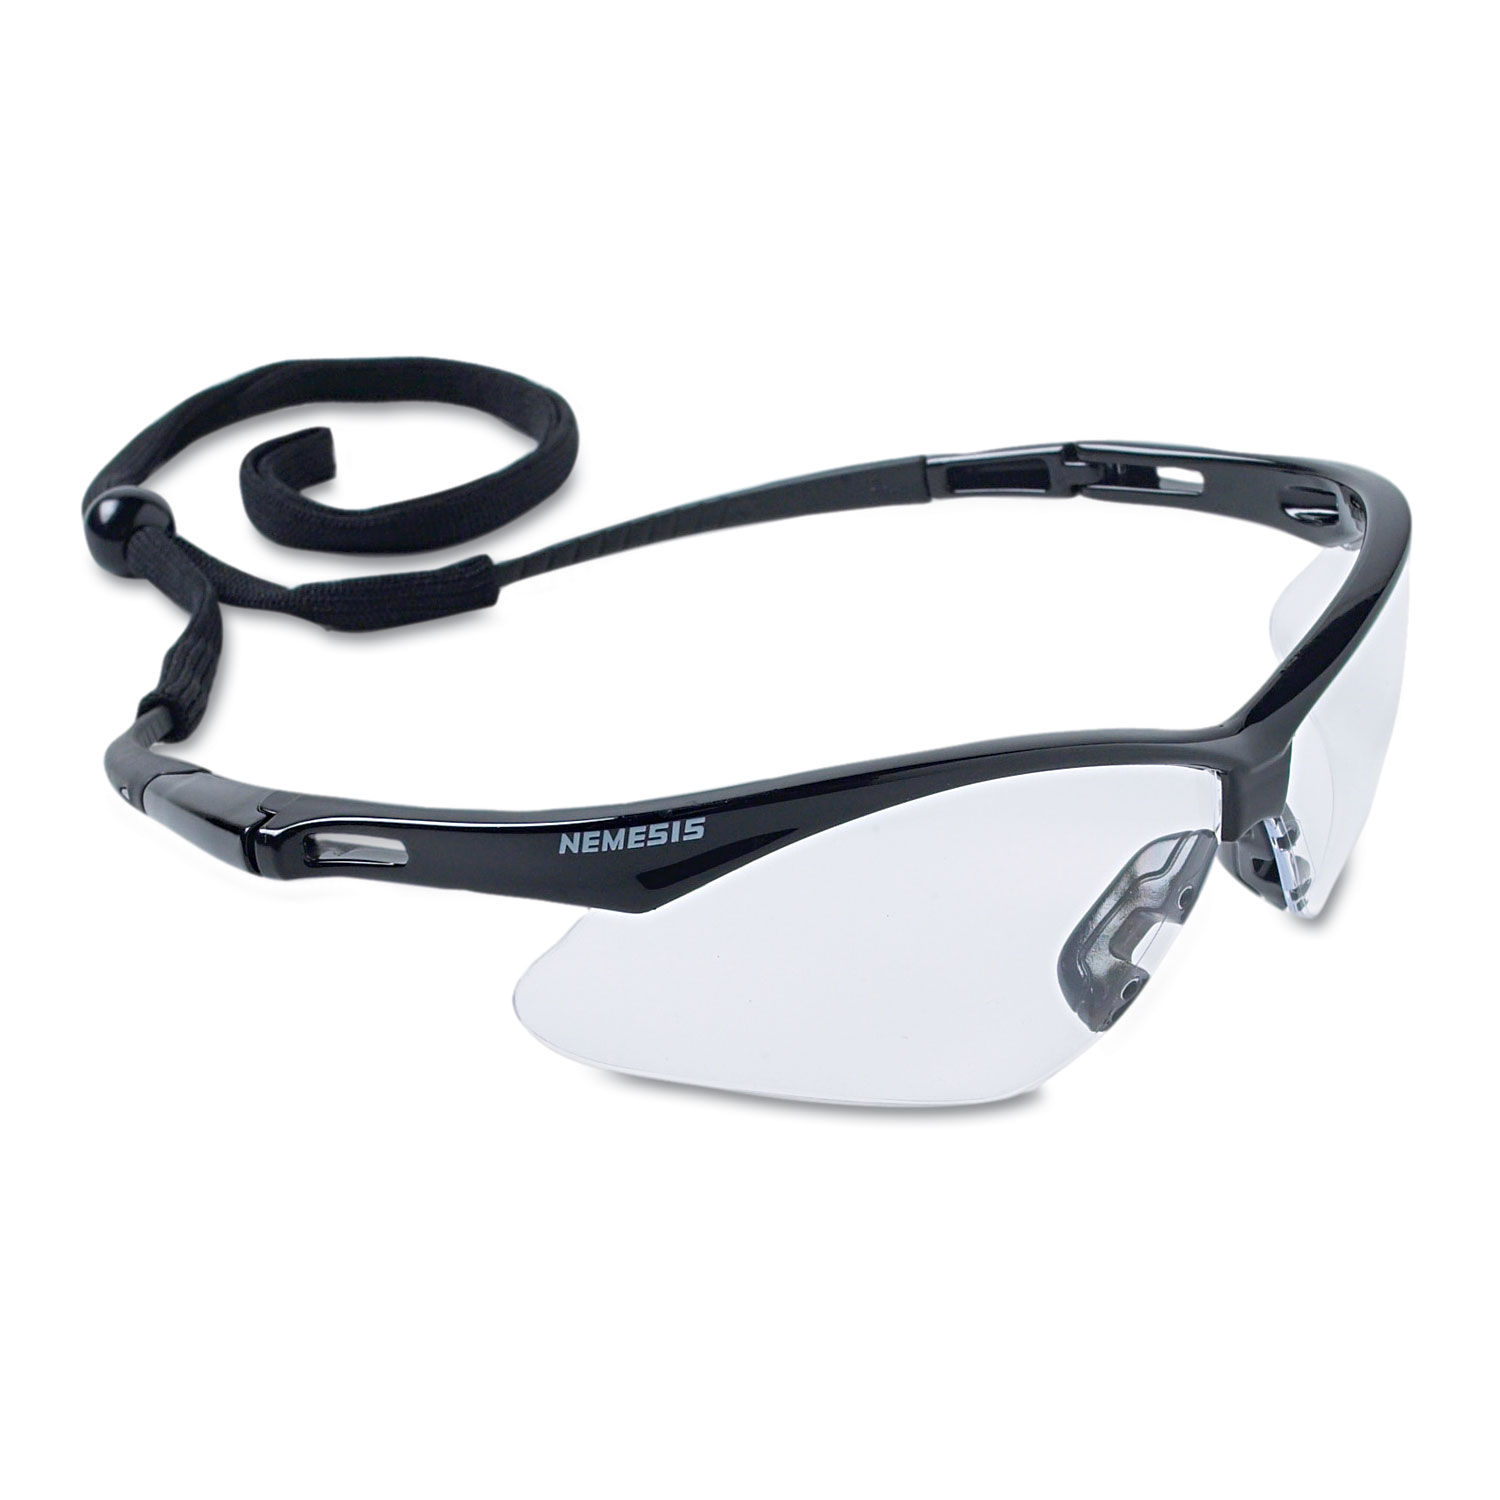 d16ad5ba63a7 Check out Jackson Safety* Nemesis* Safety Glasses and other Safety ...